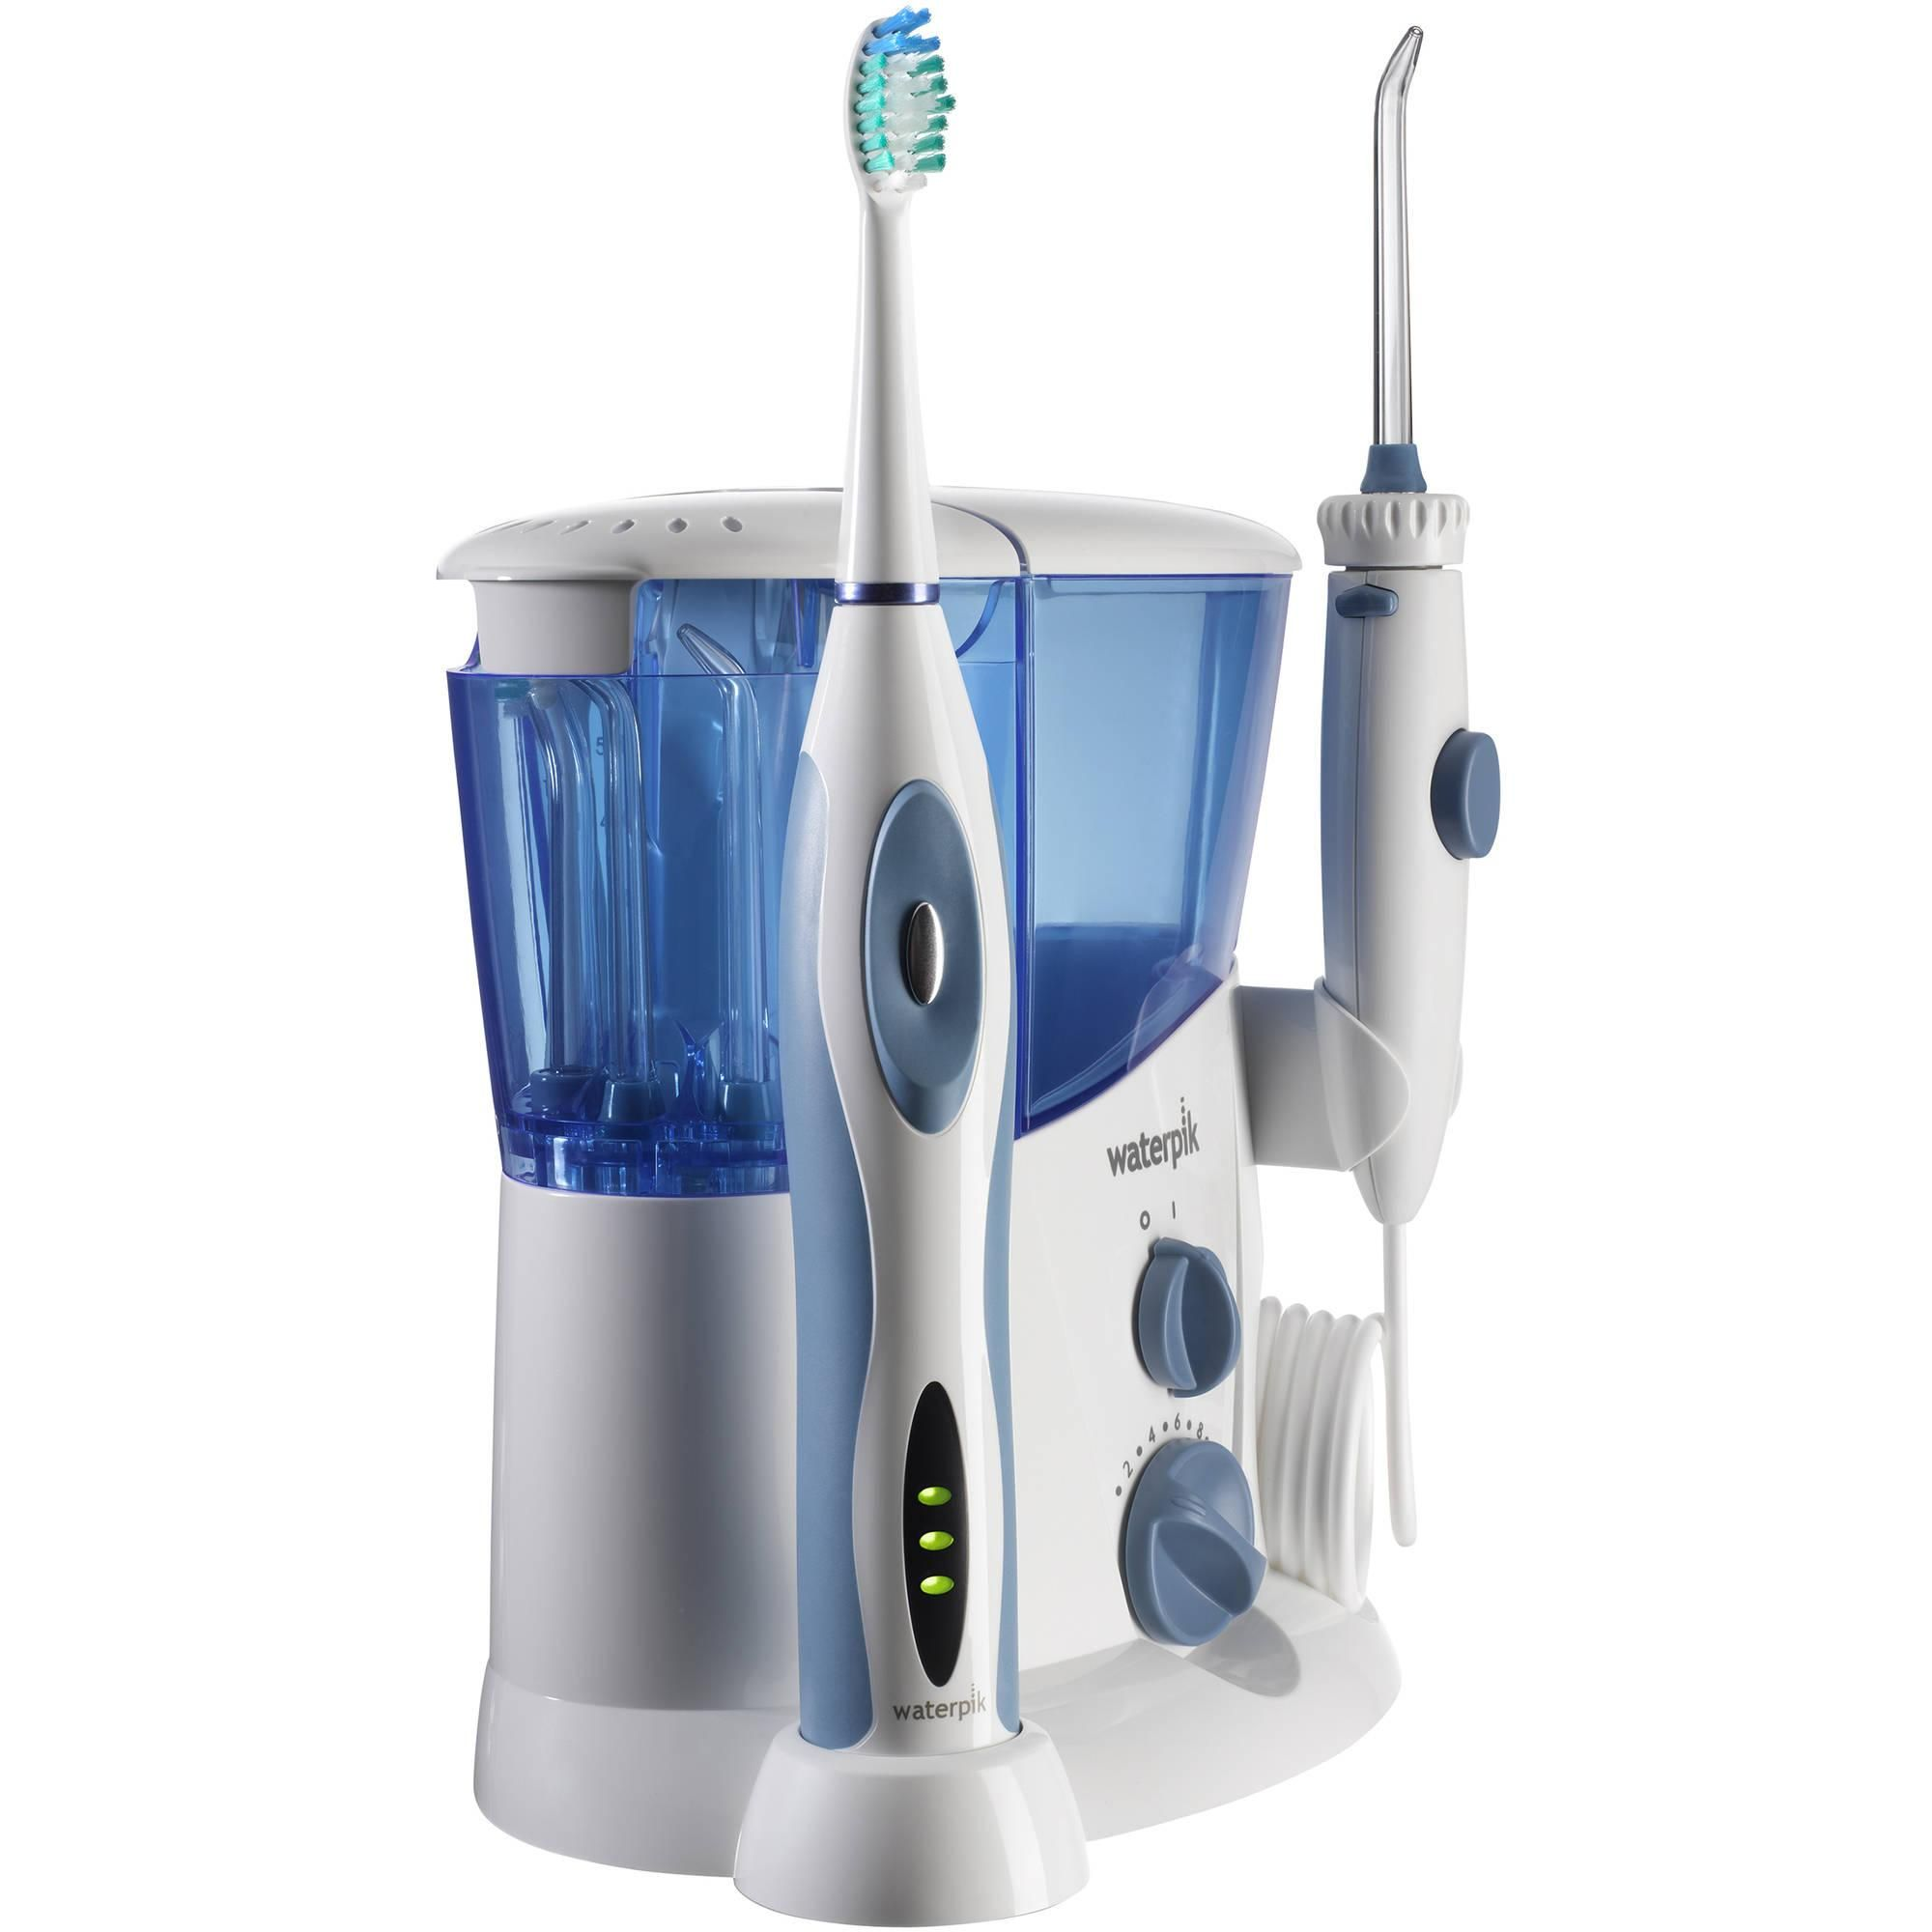 Best Toothbrushes for Dental Maintenance at Any Age | DENTAL